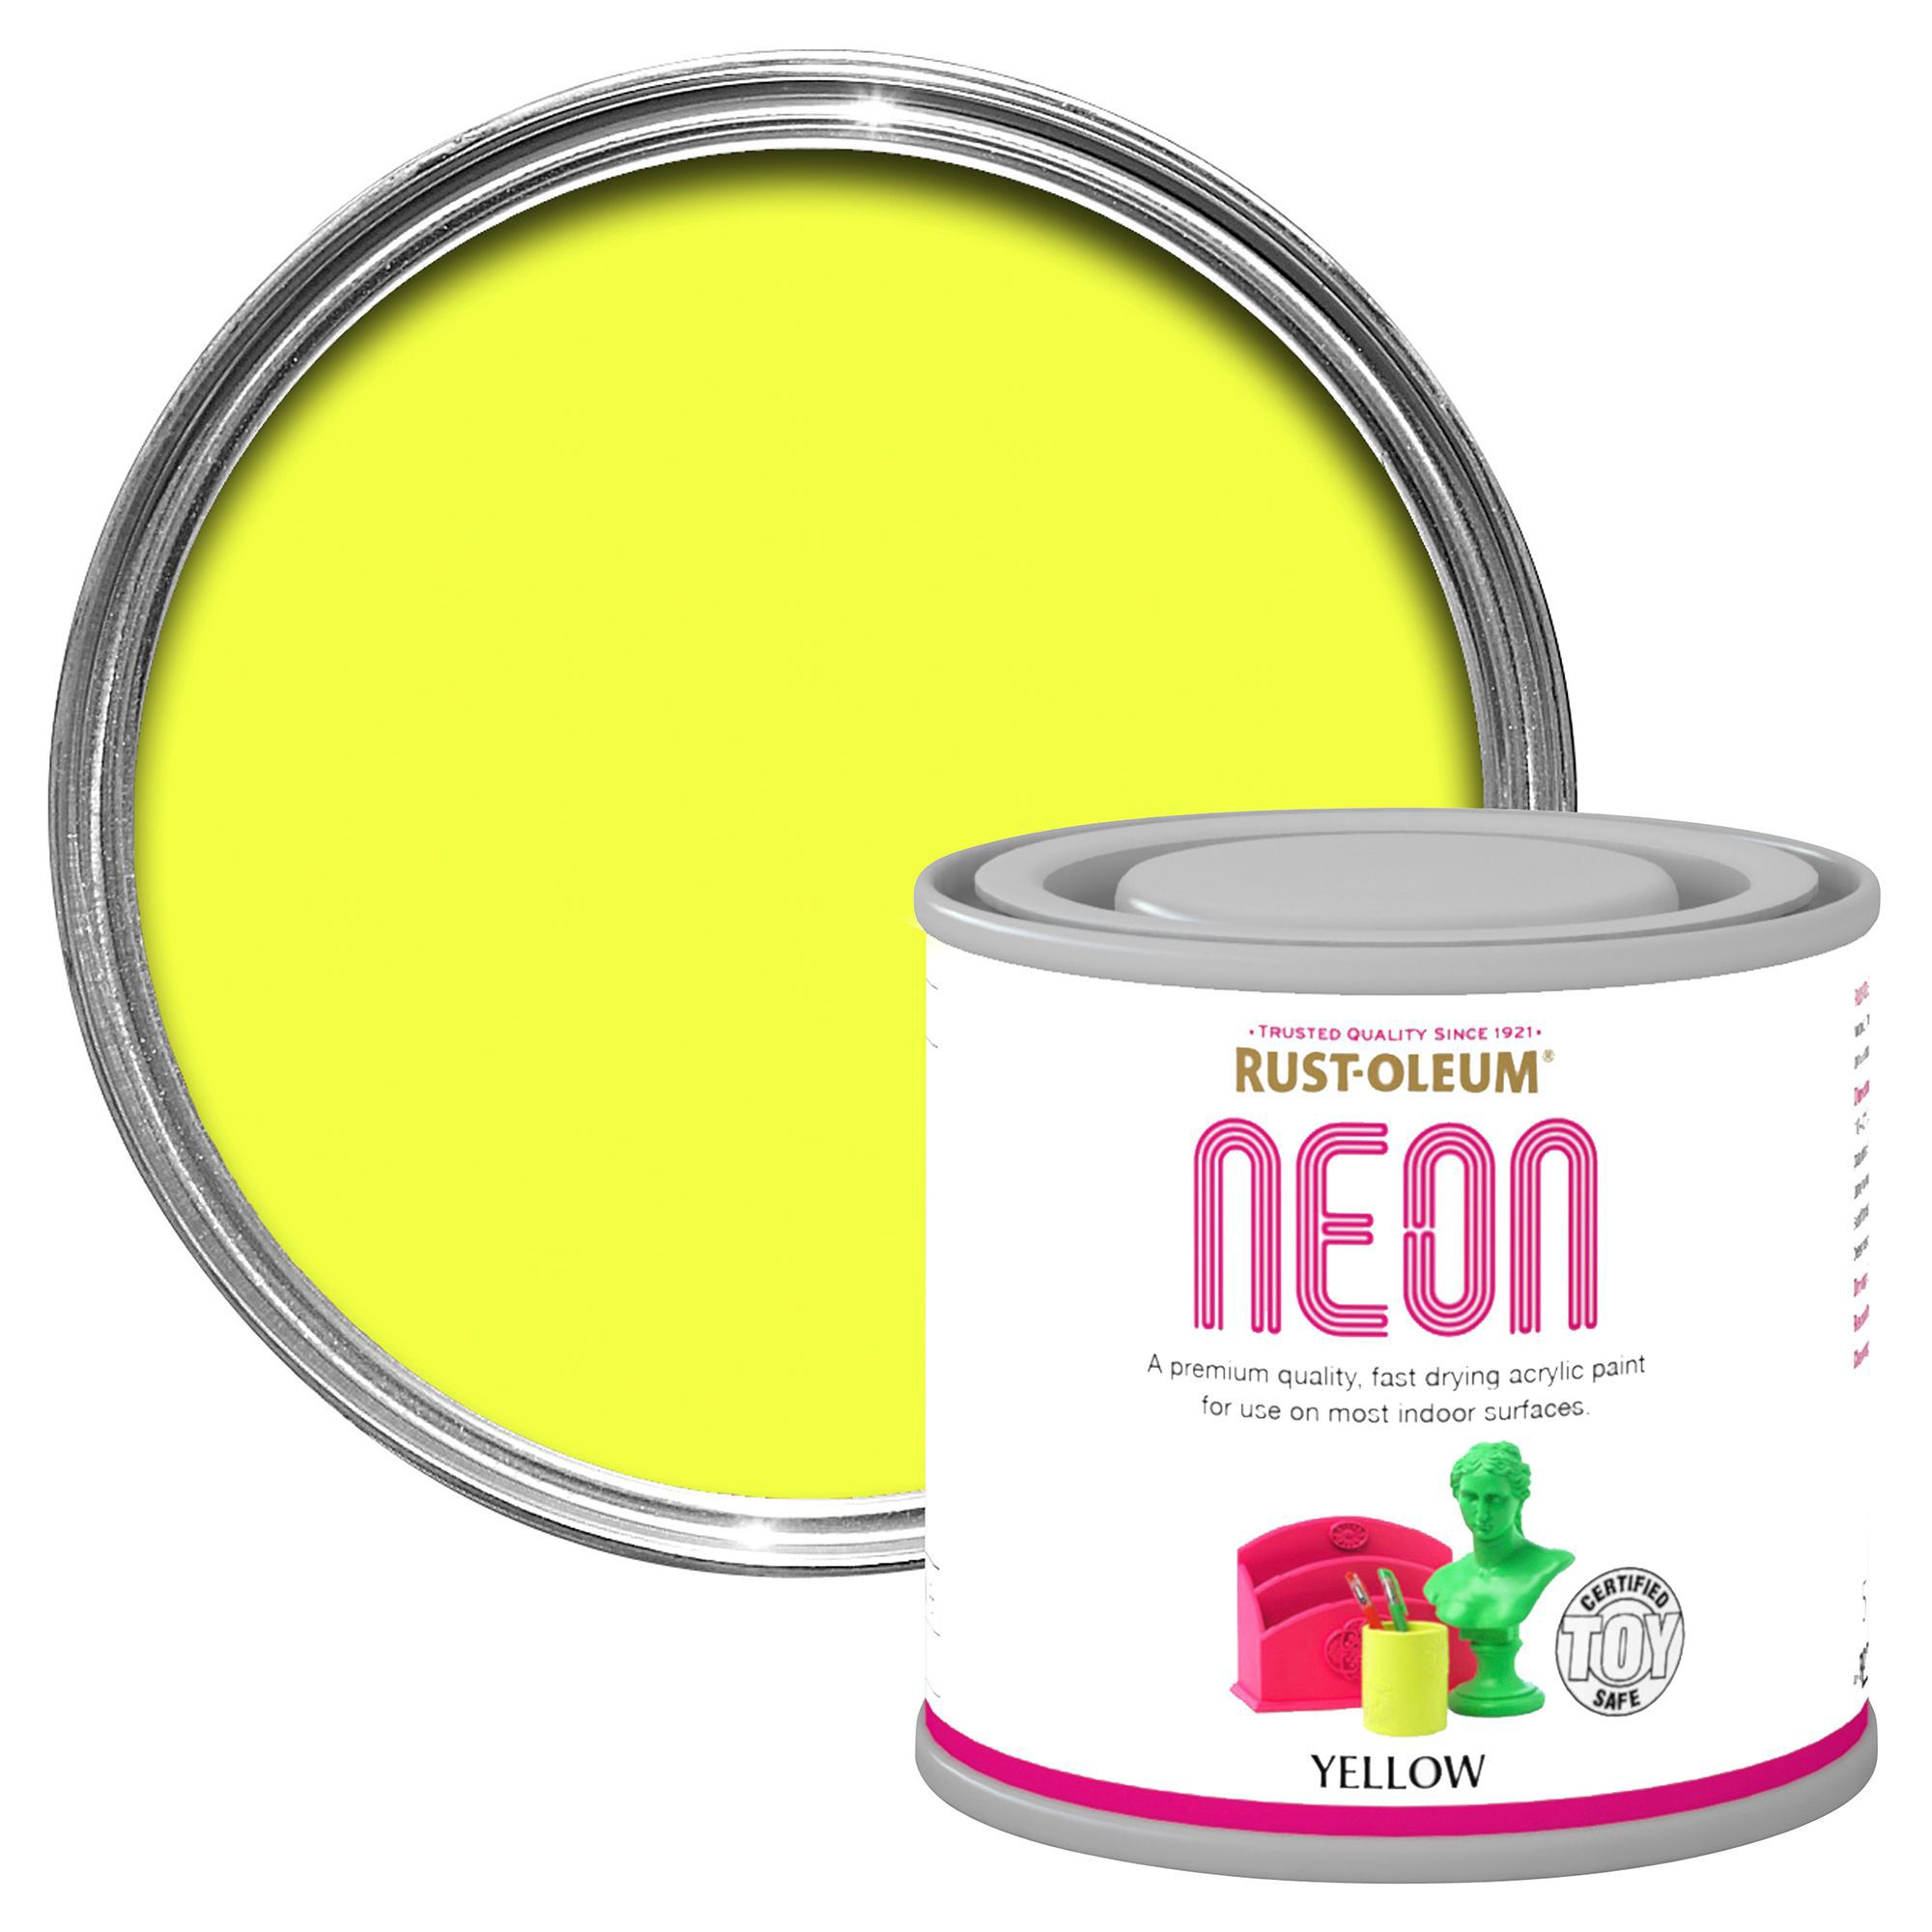 Rust-Oleum Yellow Matt Neon paint 125 ml | Departments | DIY at B&Q